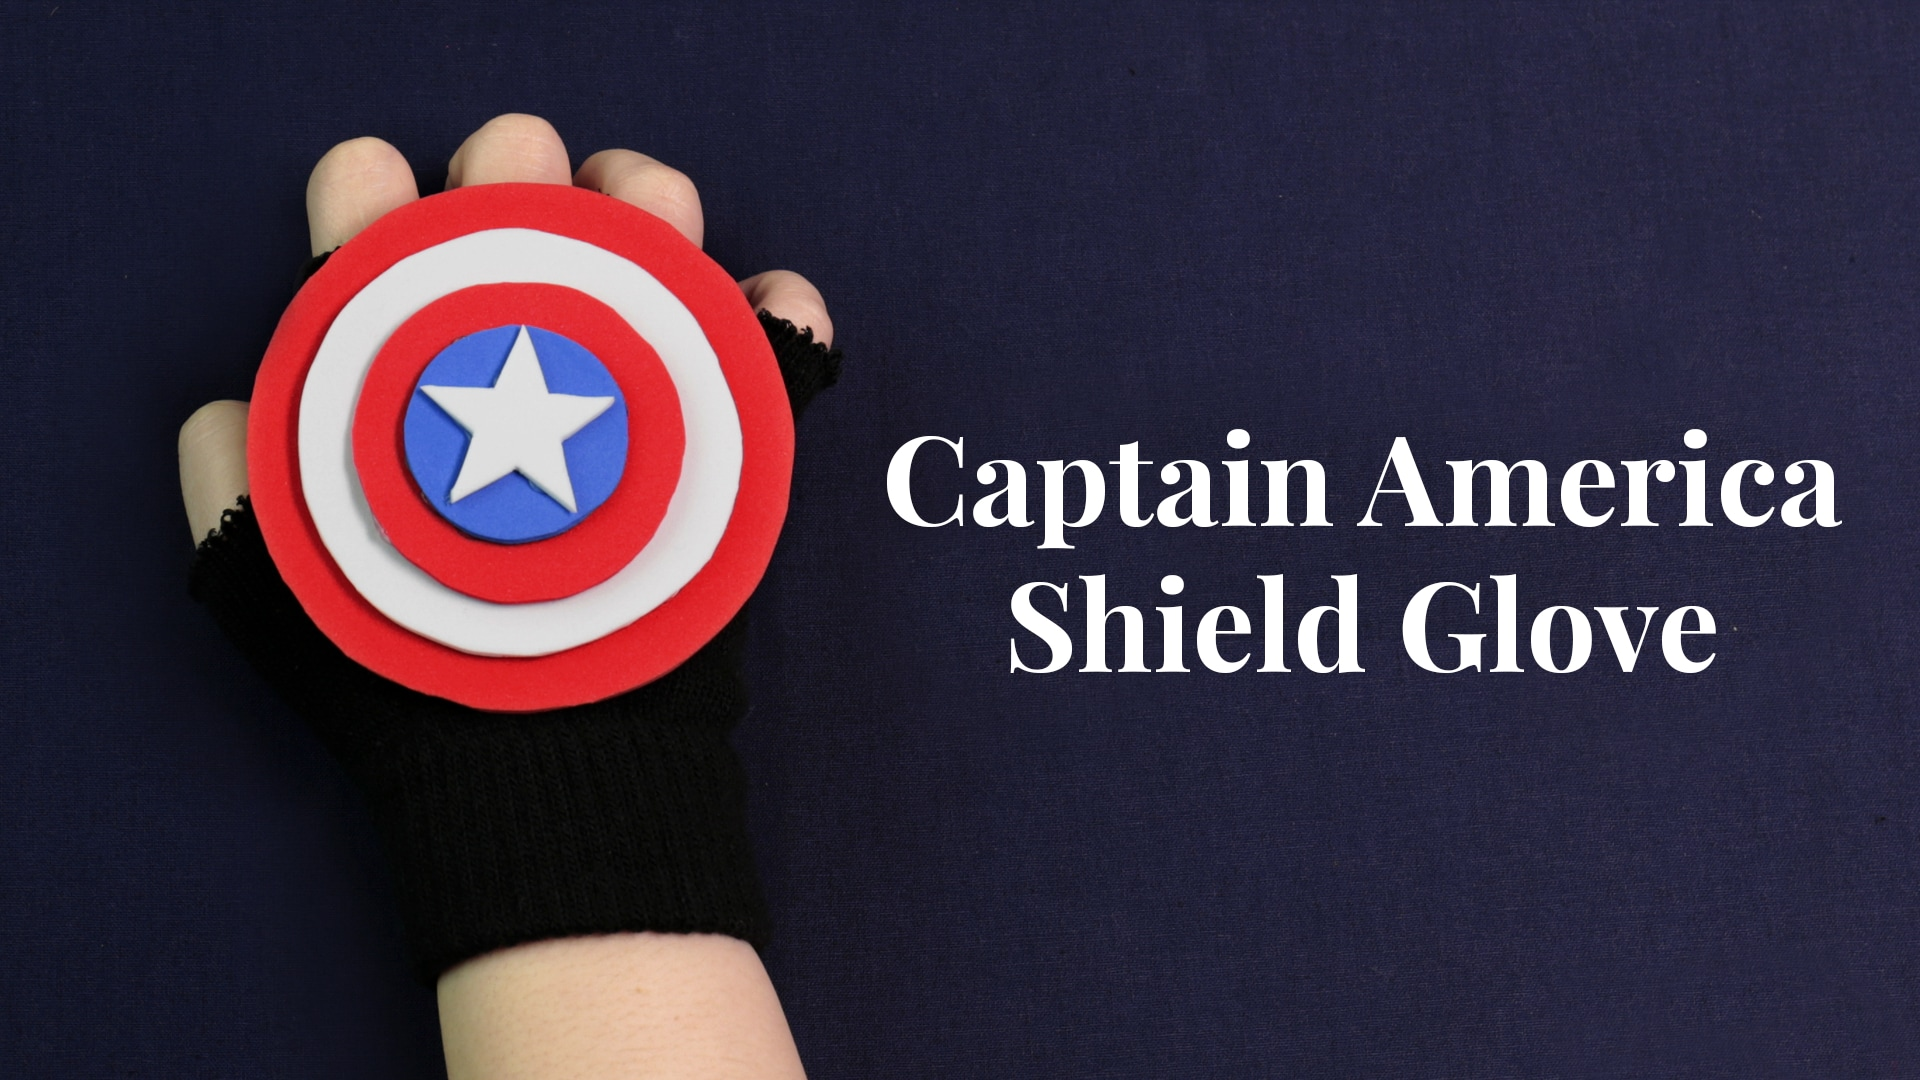 Channel Your Inner Super Hero With This Diy Captain America Shield Glove